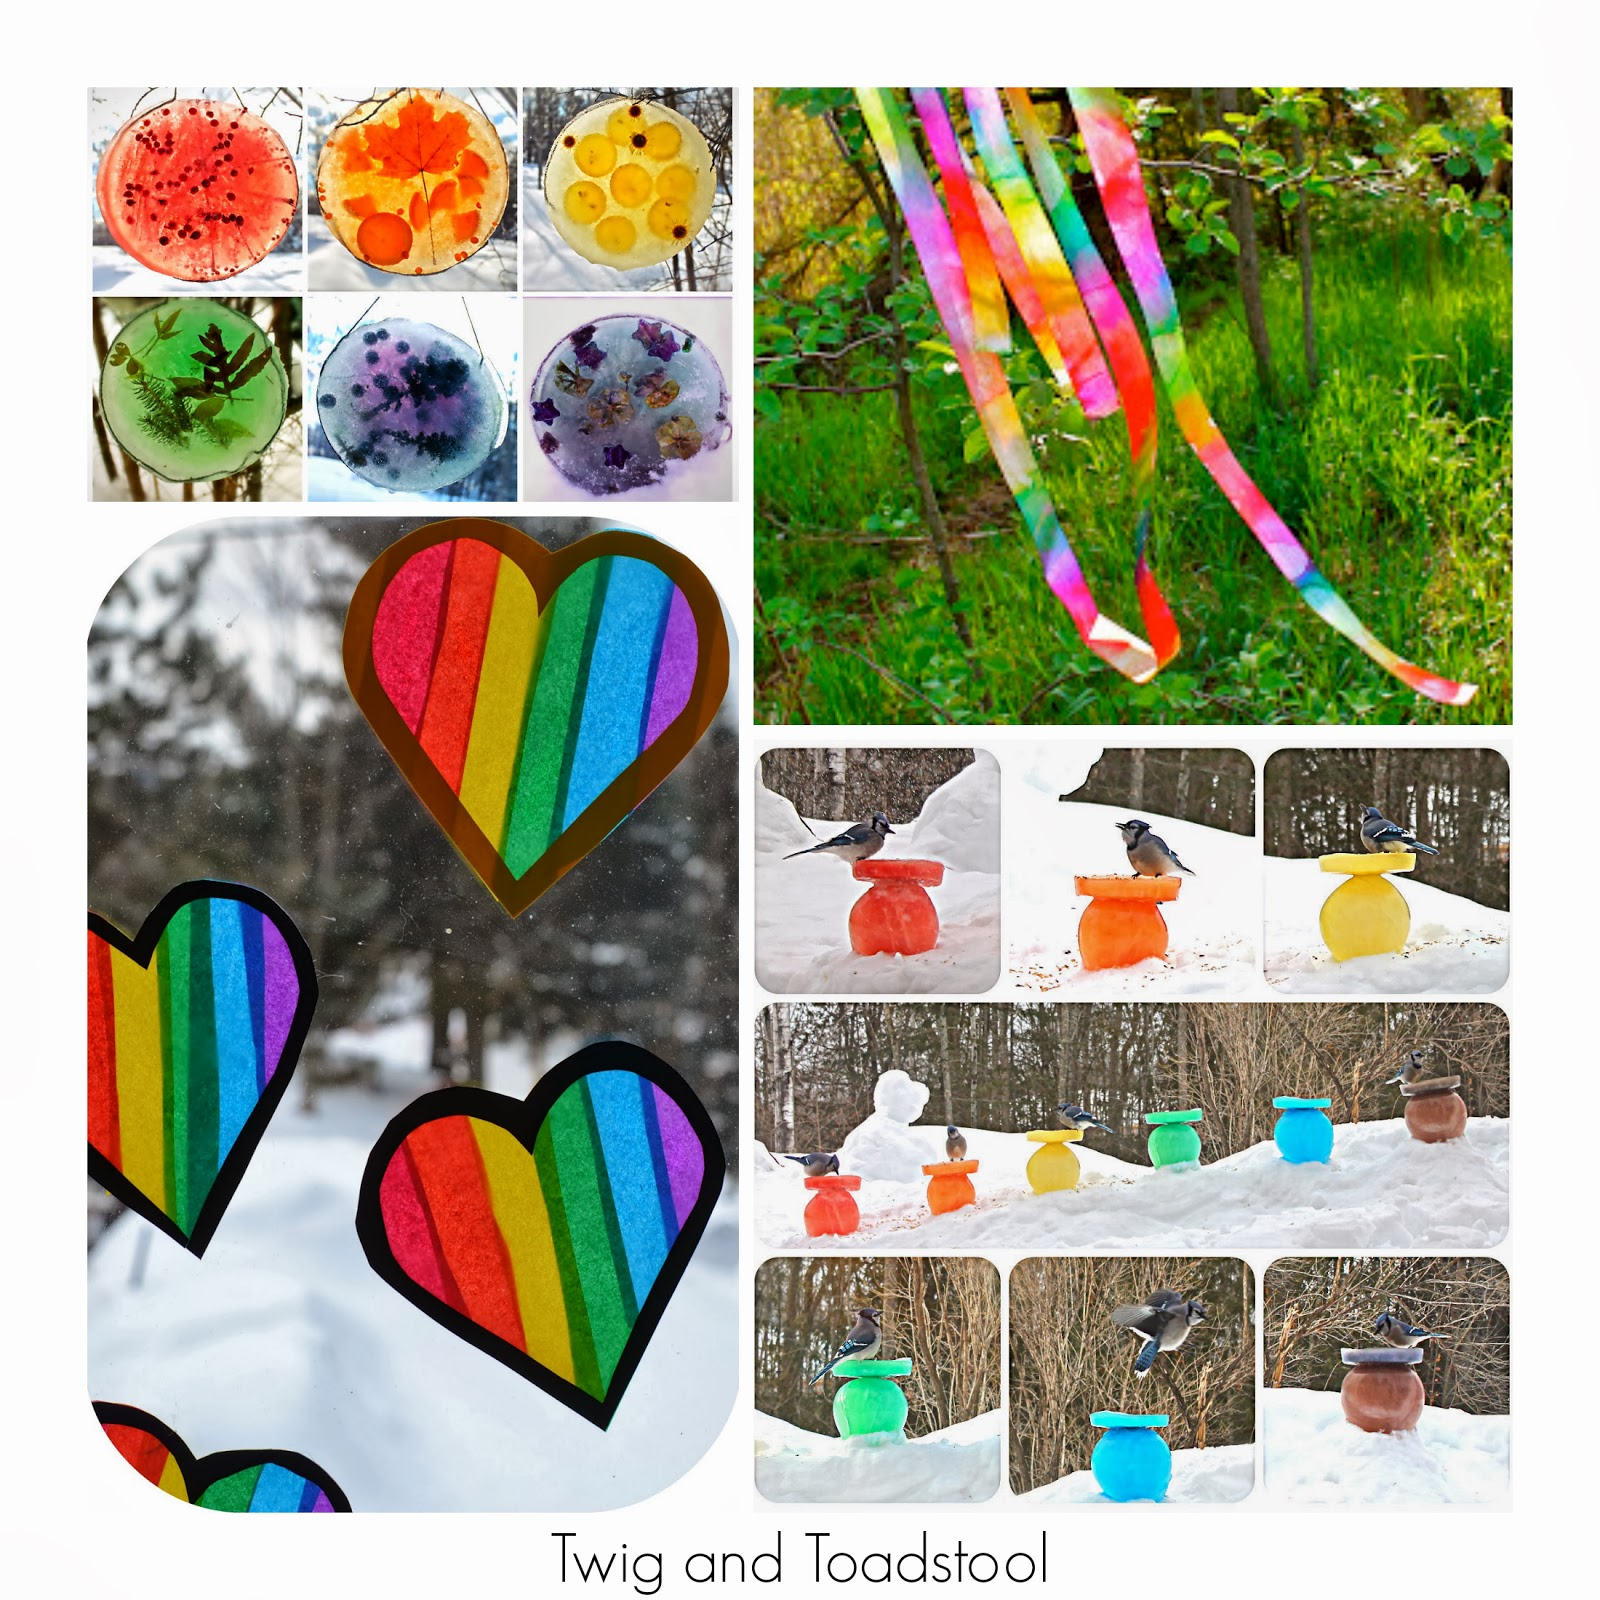 36 Rainbow Activities for Babies, Toddlers, Preschoolers and Older Kids